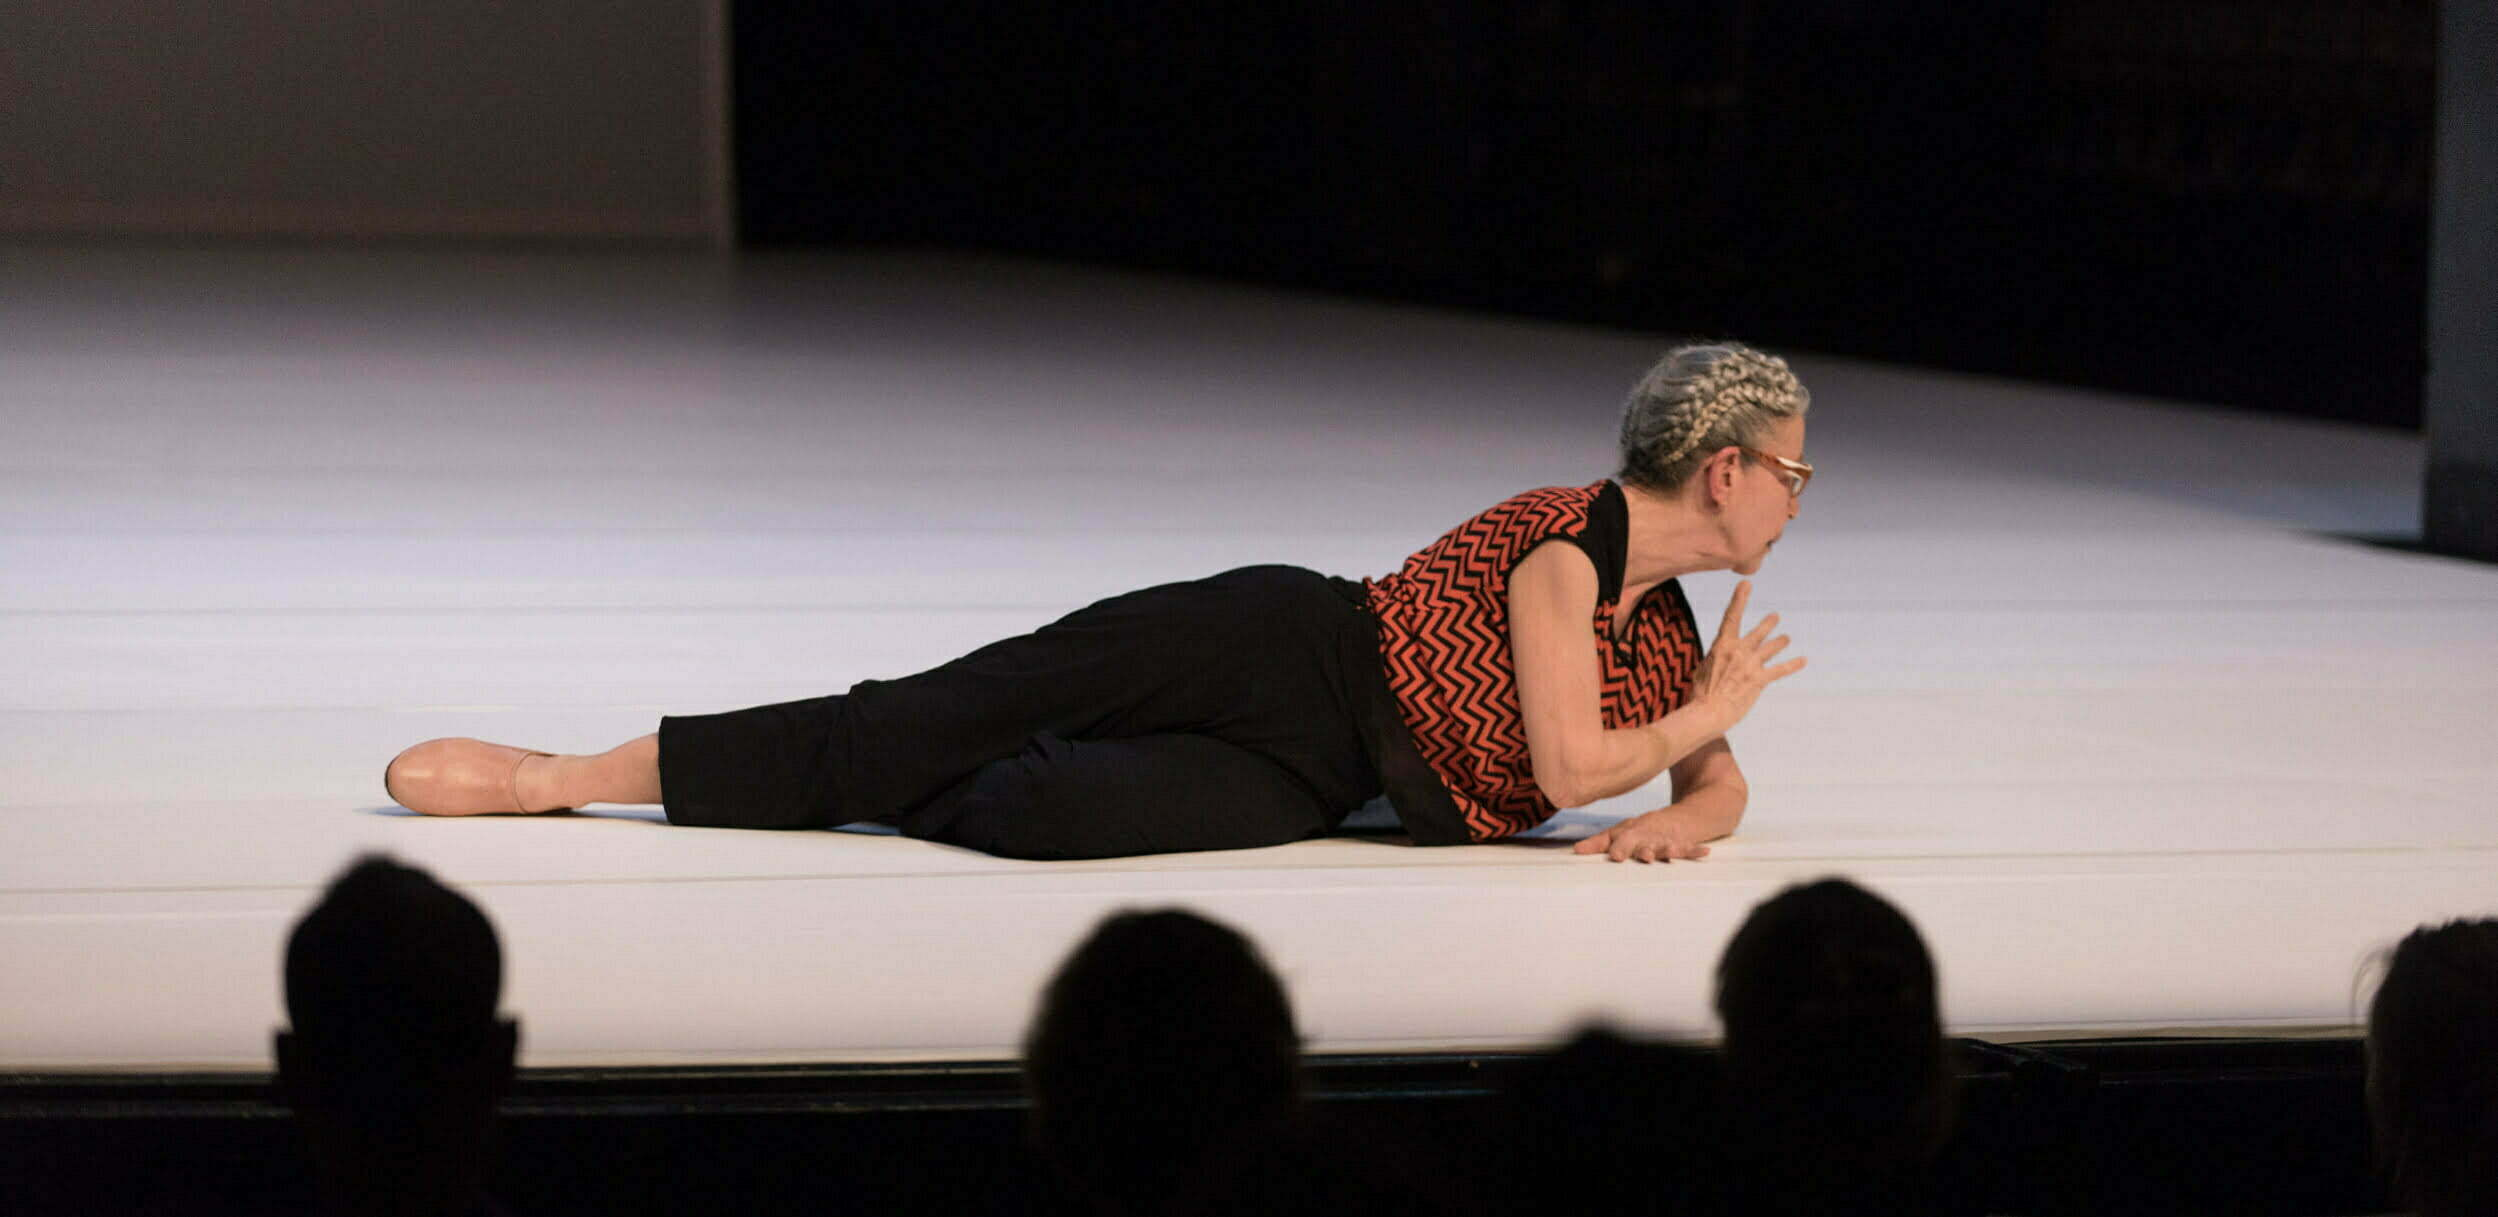 Deborah Hay lies on a white dance floor, facing to the right, with one arm supporting her and the other raised toward her chin. She is wearing dark trousers, pink shoes and an orange and black short-sleeved shirt with a zigzagg pattern. She is wearing glasses. In the foreground of the image are the silhouettes of audience members' heads, as they watch the performance.